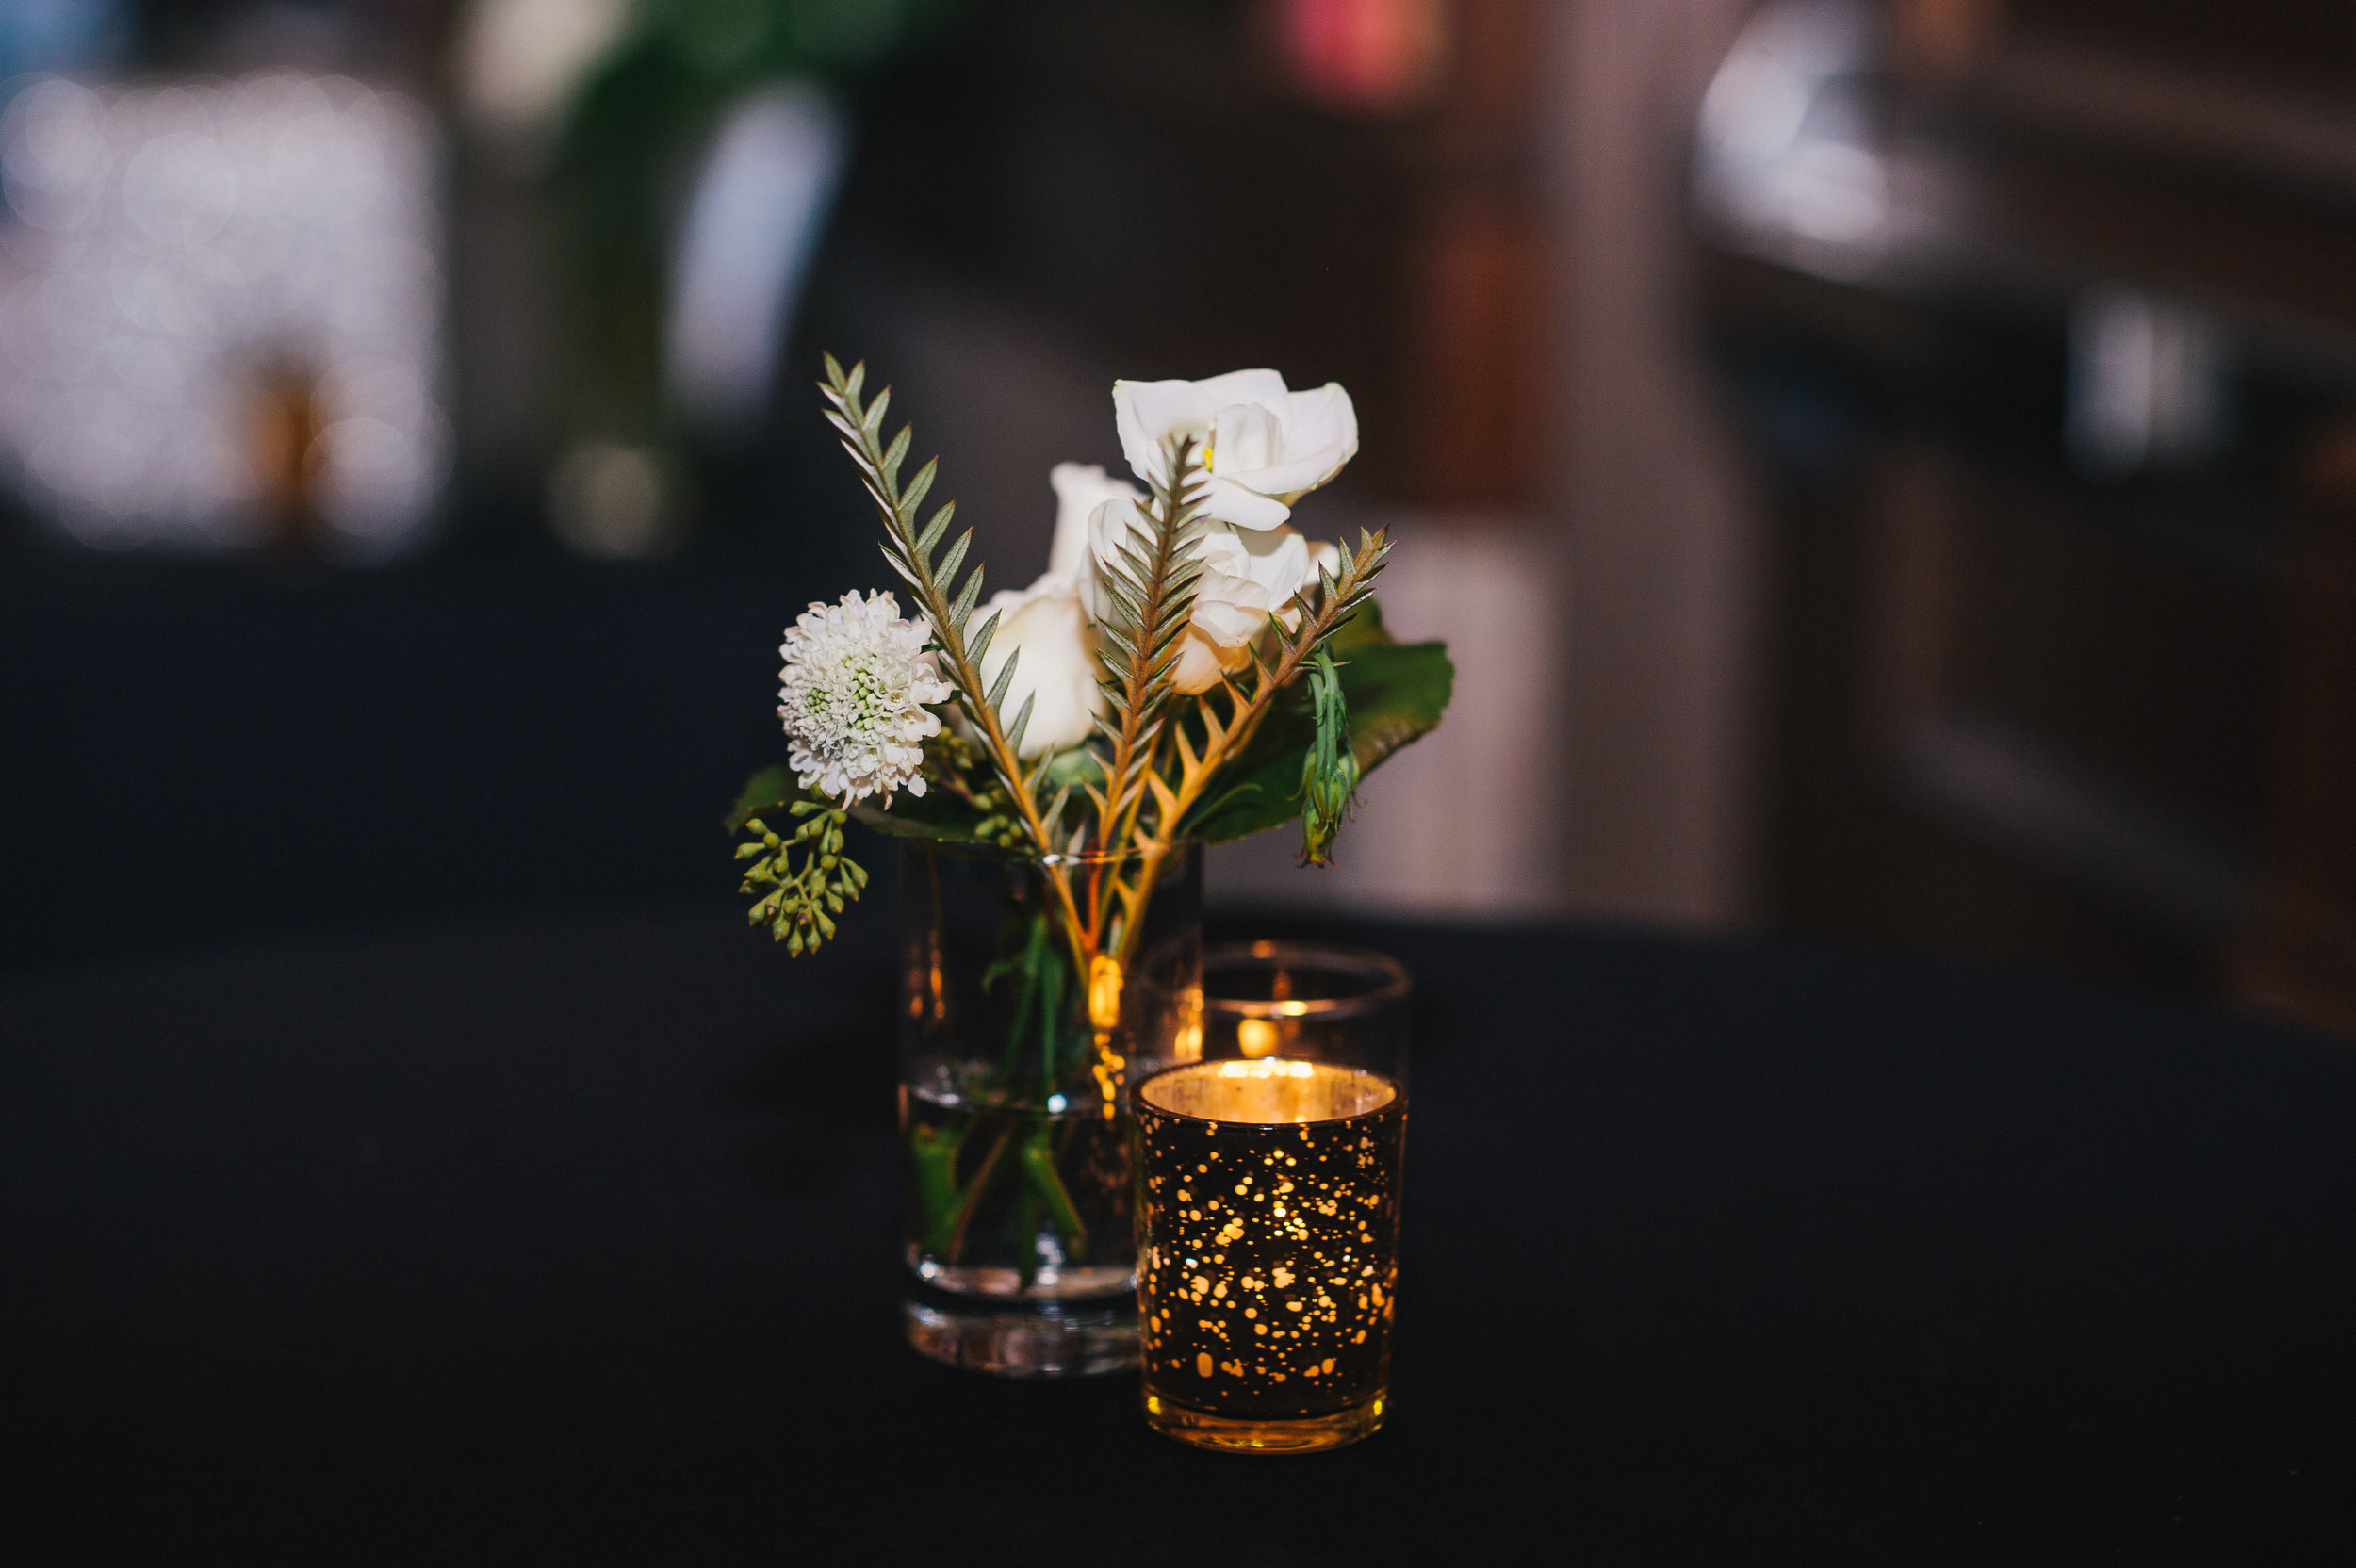 White wedding flower centerpieces with candles for black, white, and gold wedding in Buffalo, NY planned by Exhale Events. Find more wedding inspiration at exhale-events.com!